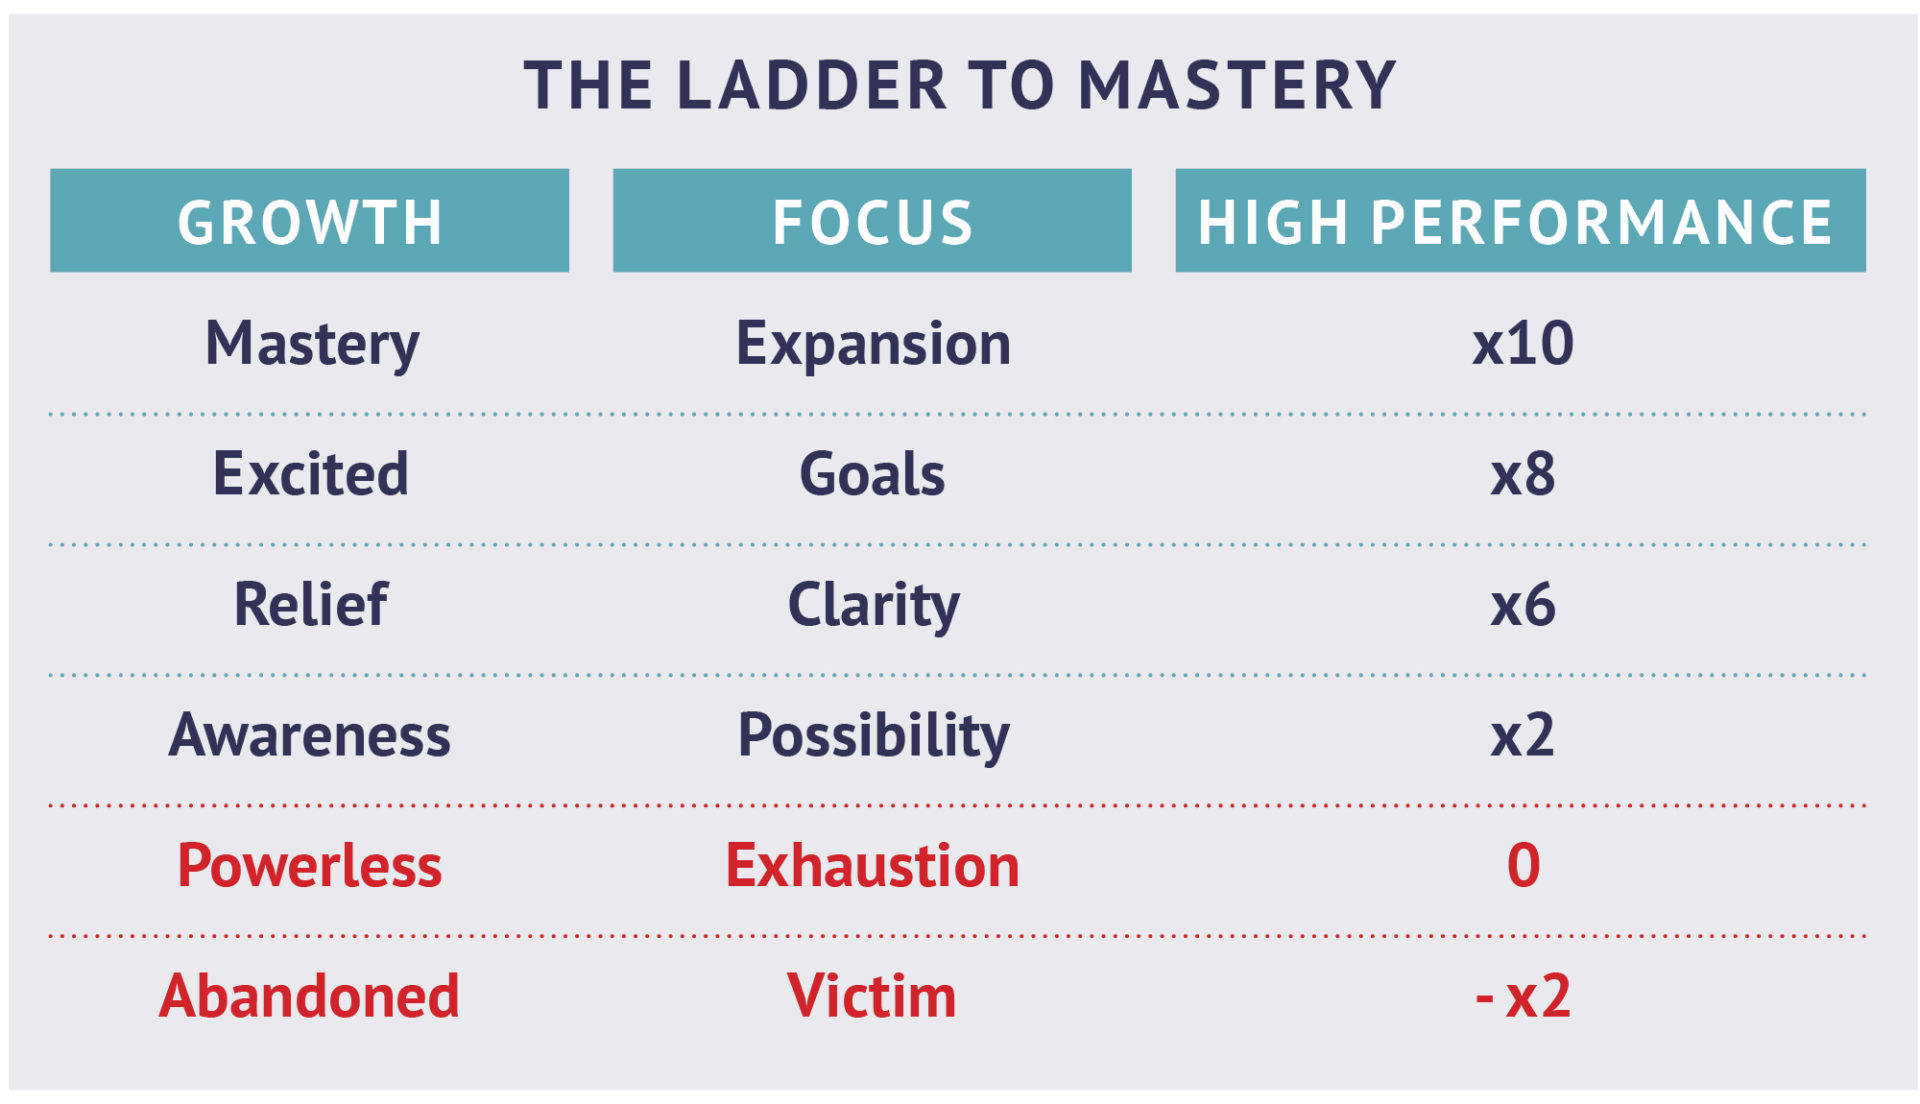 Ladder to Mastery model